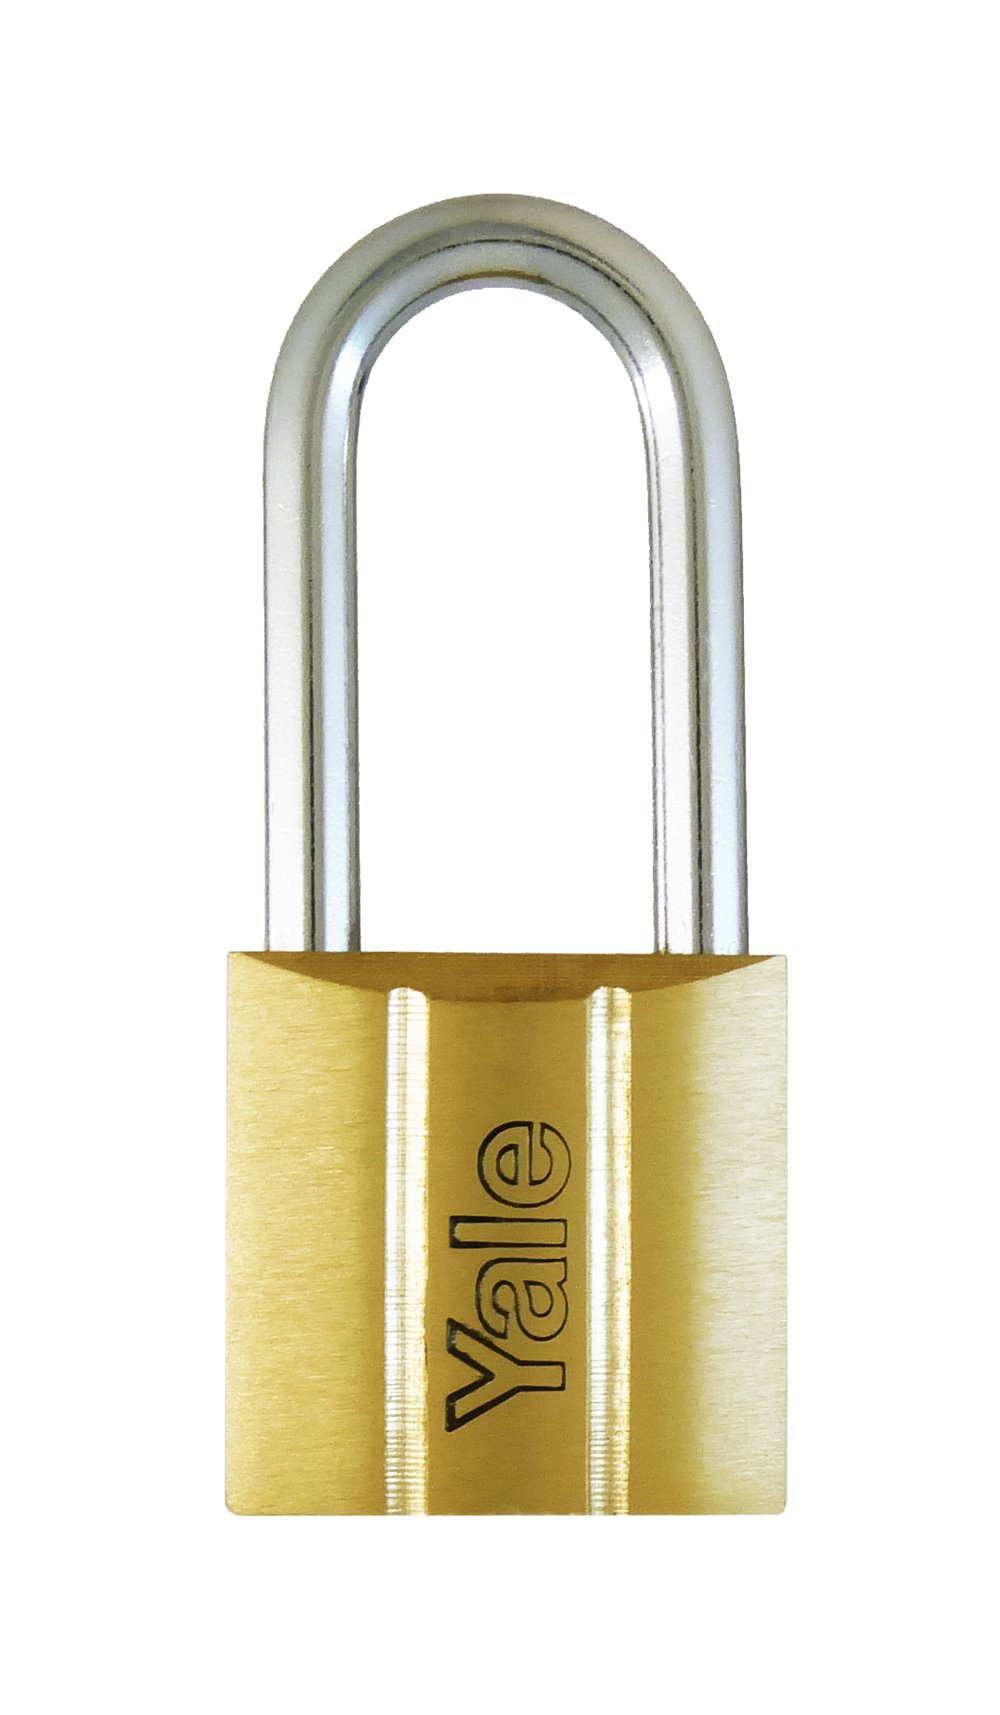 Y140/25LS - Yale 140 Series Long Shackle Brass Padlock 25mm